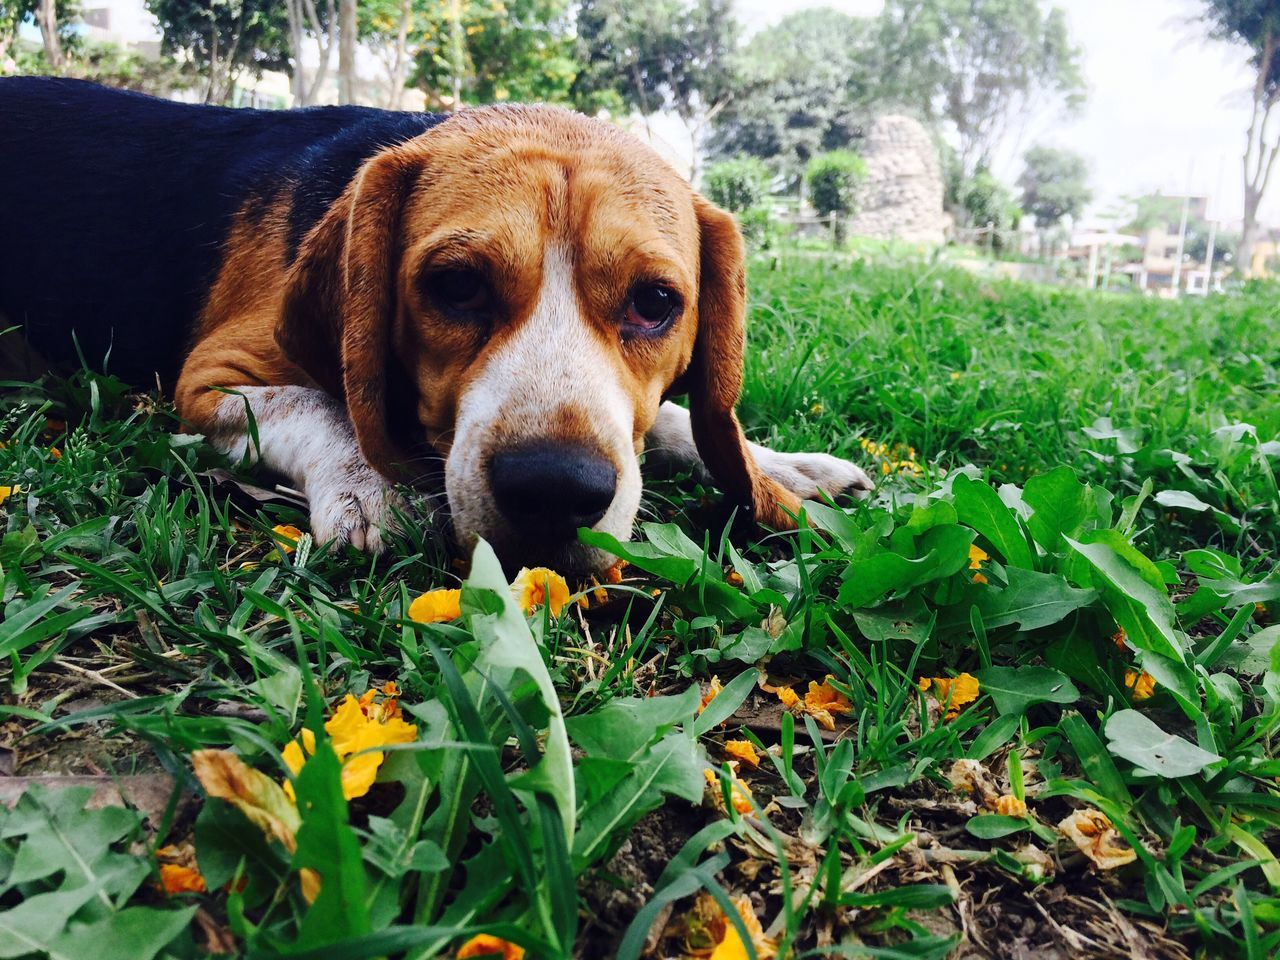 dog, one animal, pets, animal themes, domestic animals, mammal, grass, day, no people, looking at camera, outdoors, nature, close-up, portrait, beagle